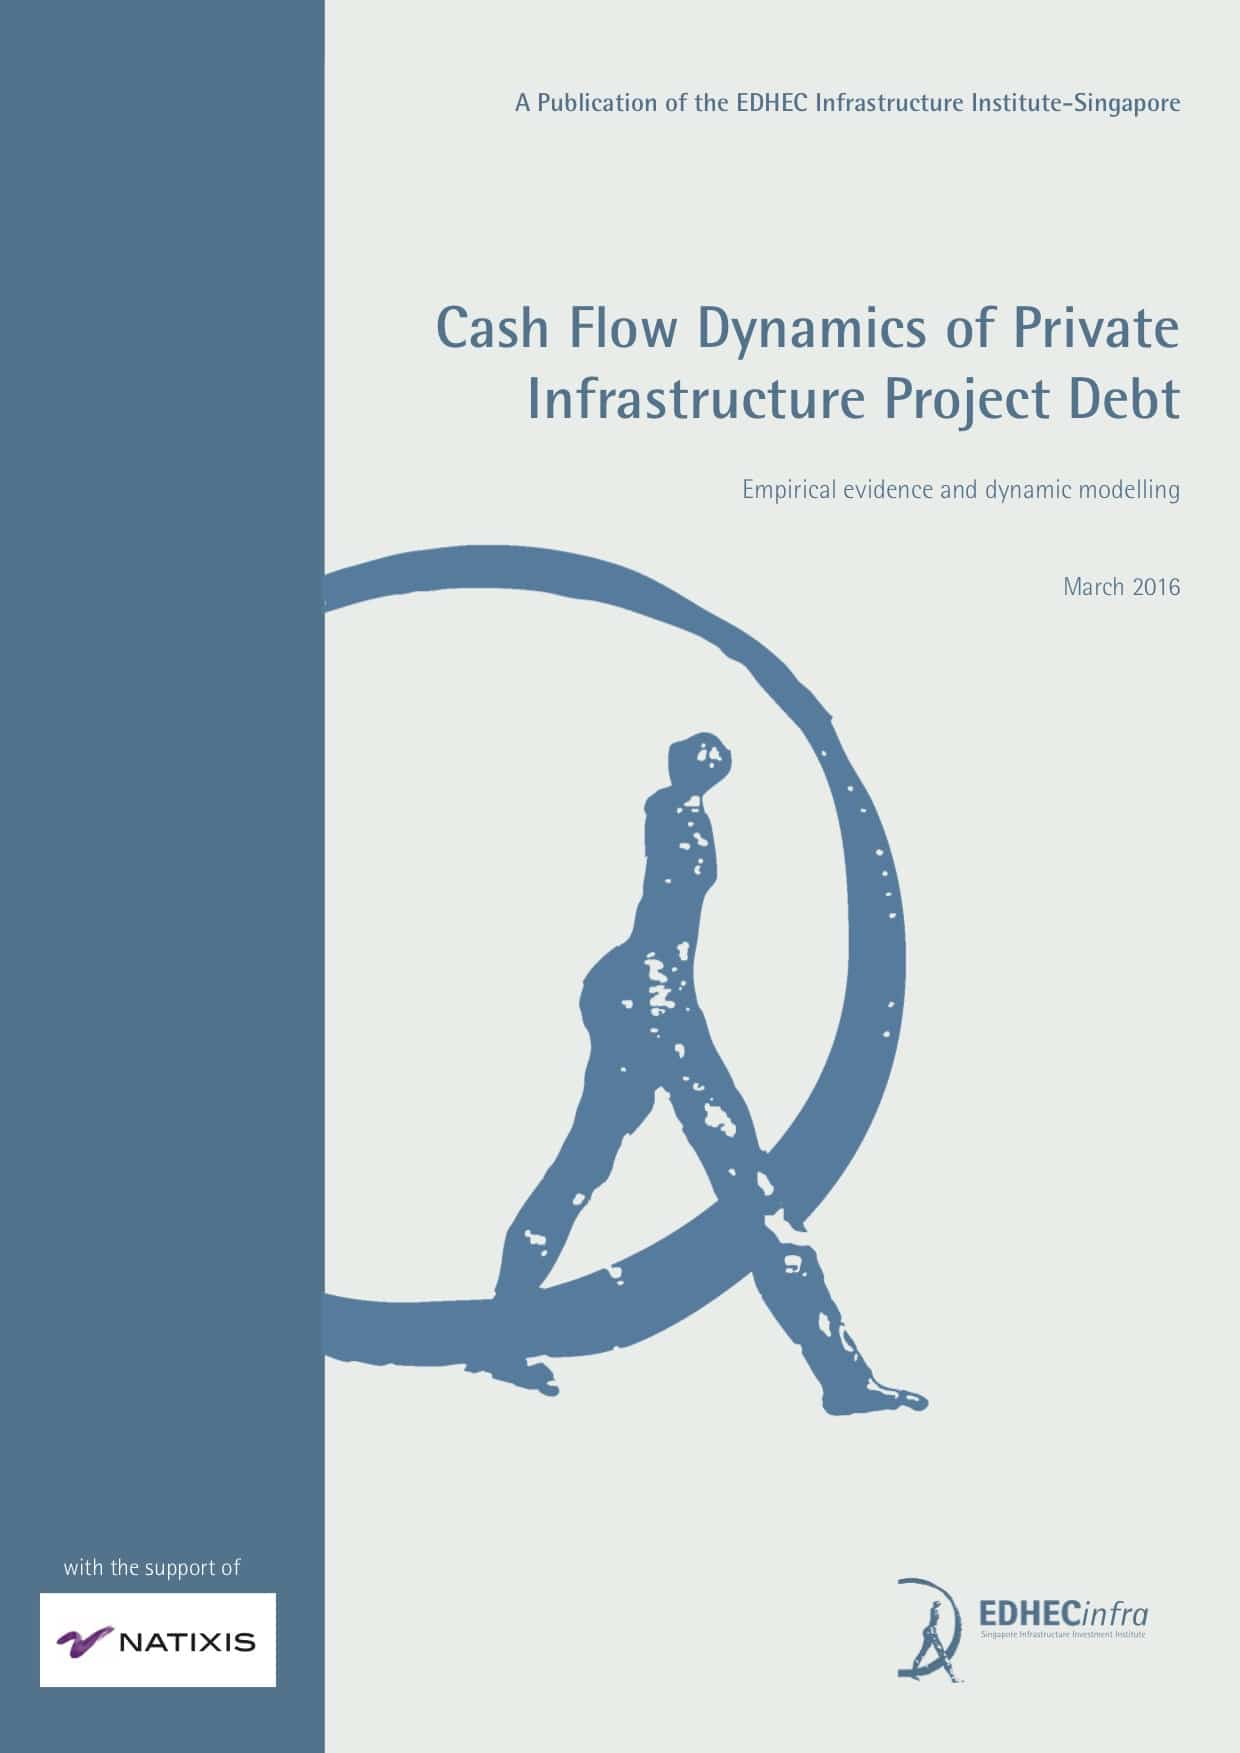 Cash flow dynamics of infrastructure project debt: Empirical evidence and dynamic modelling